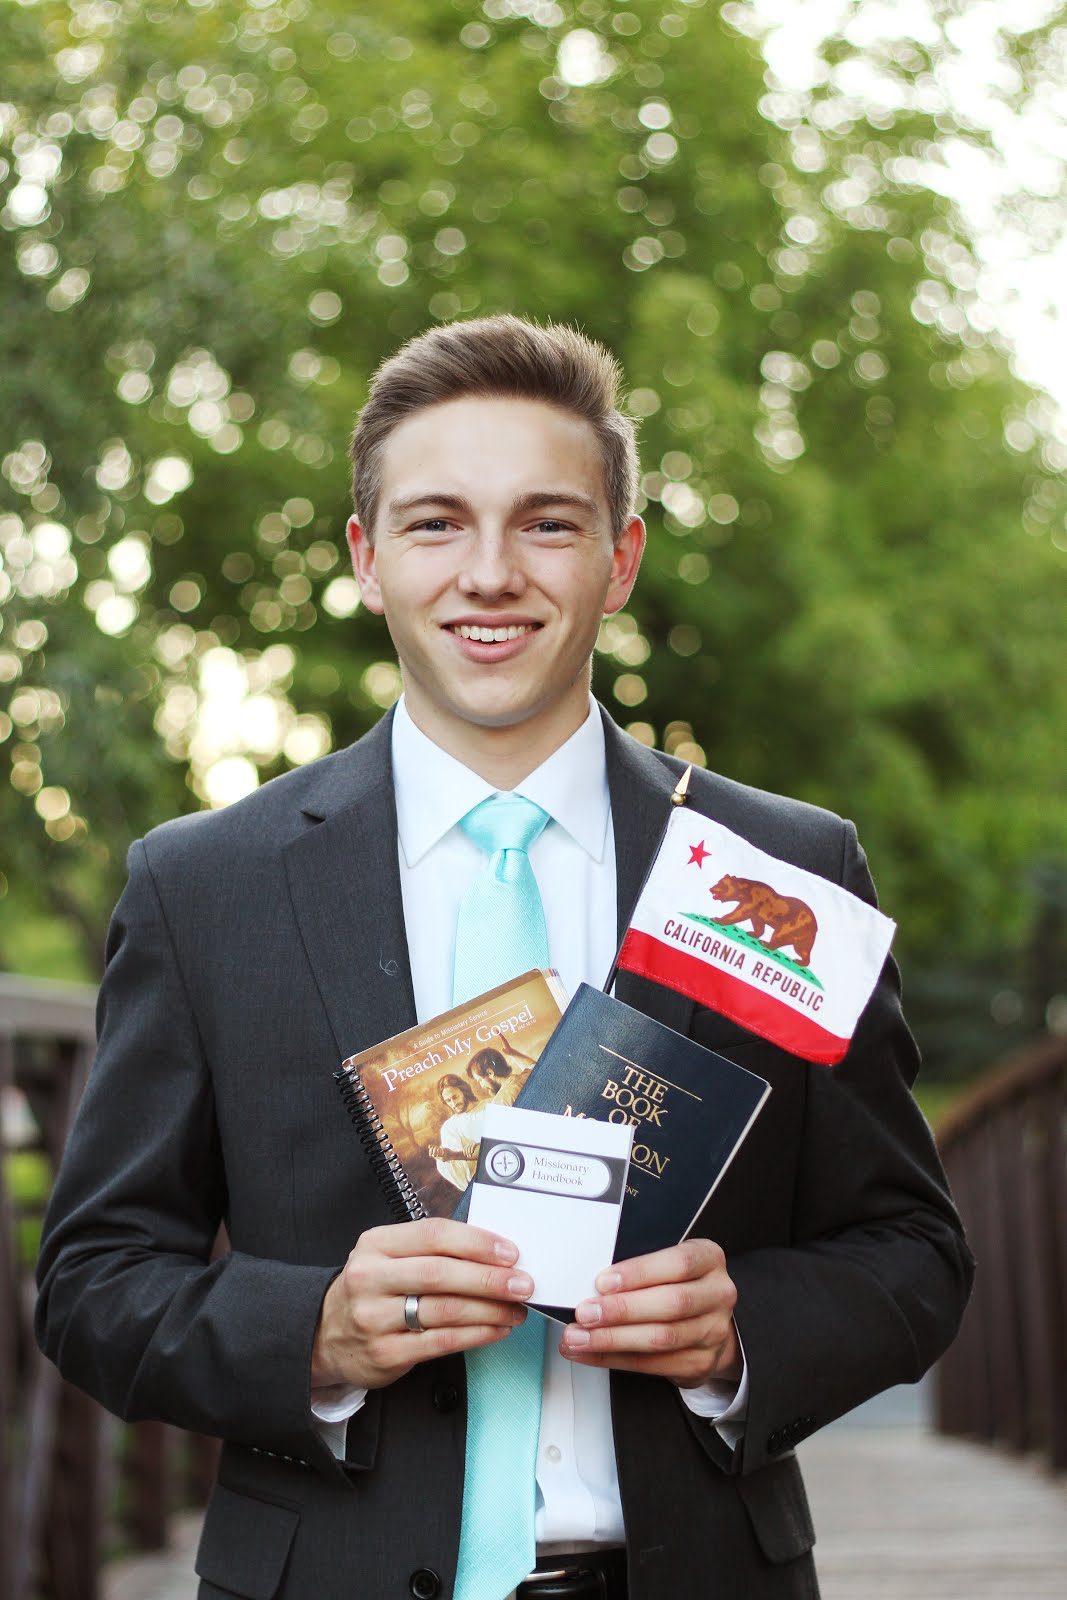 Elder Connor Hopkin